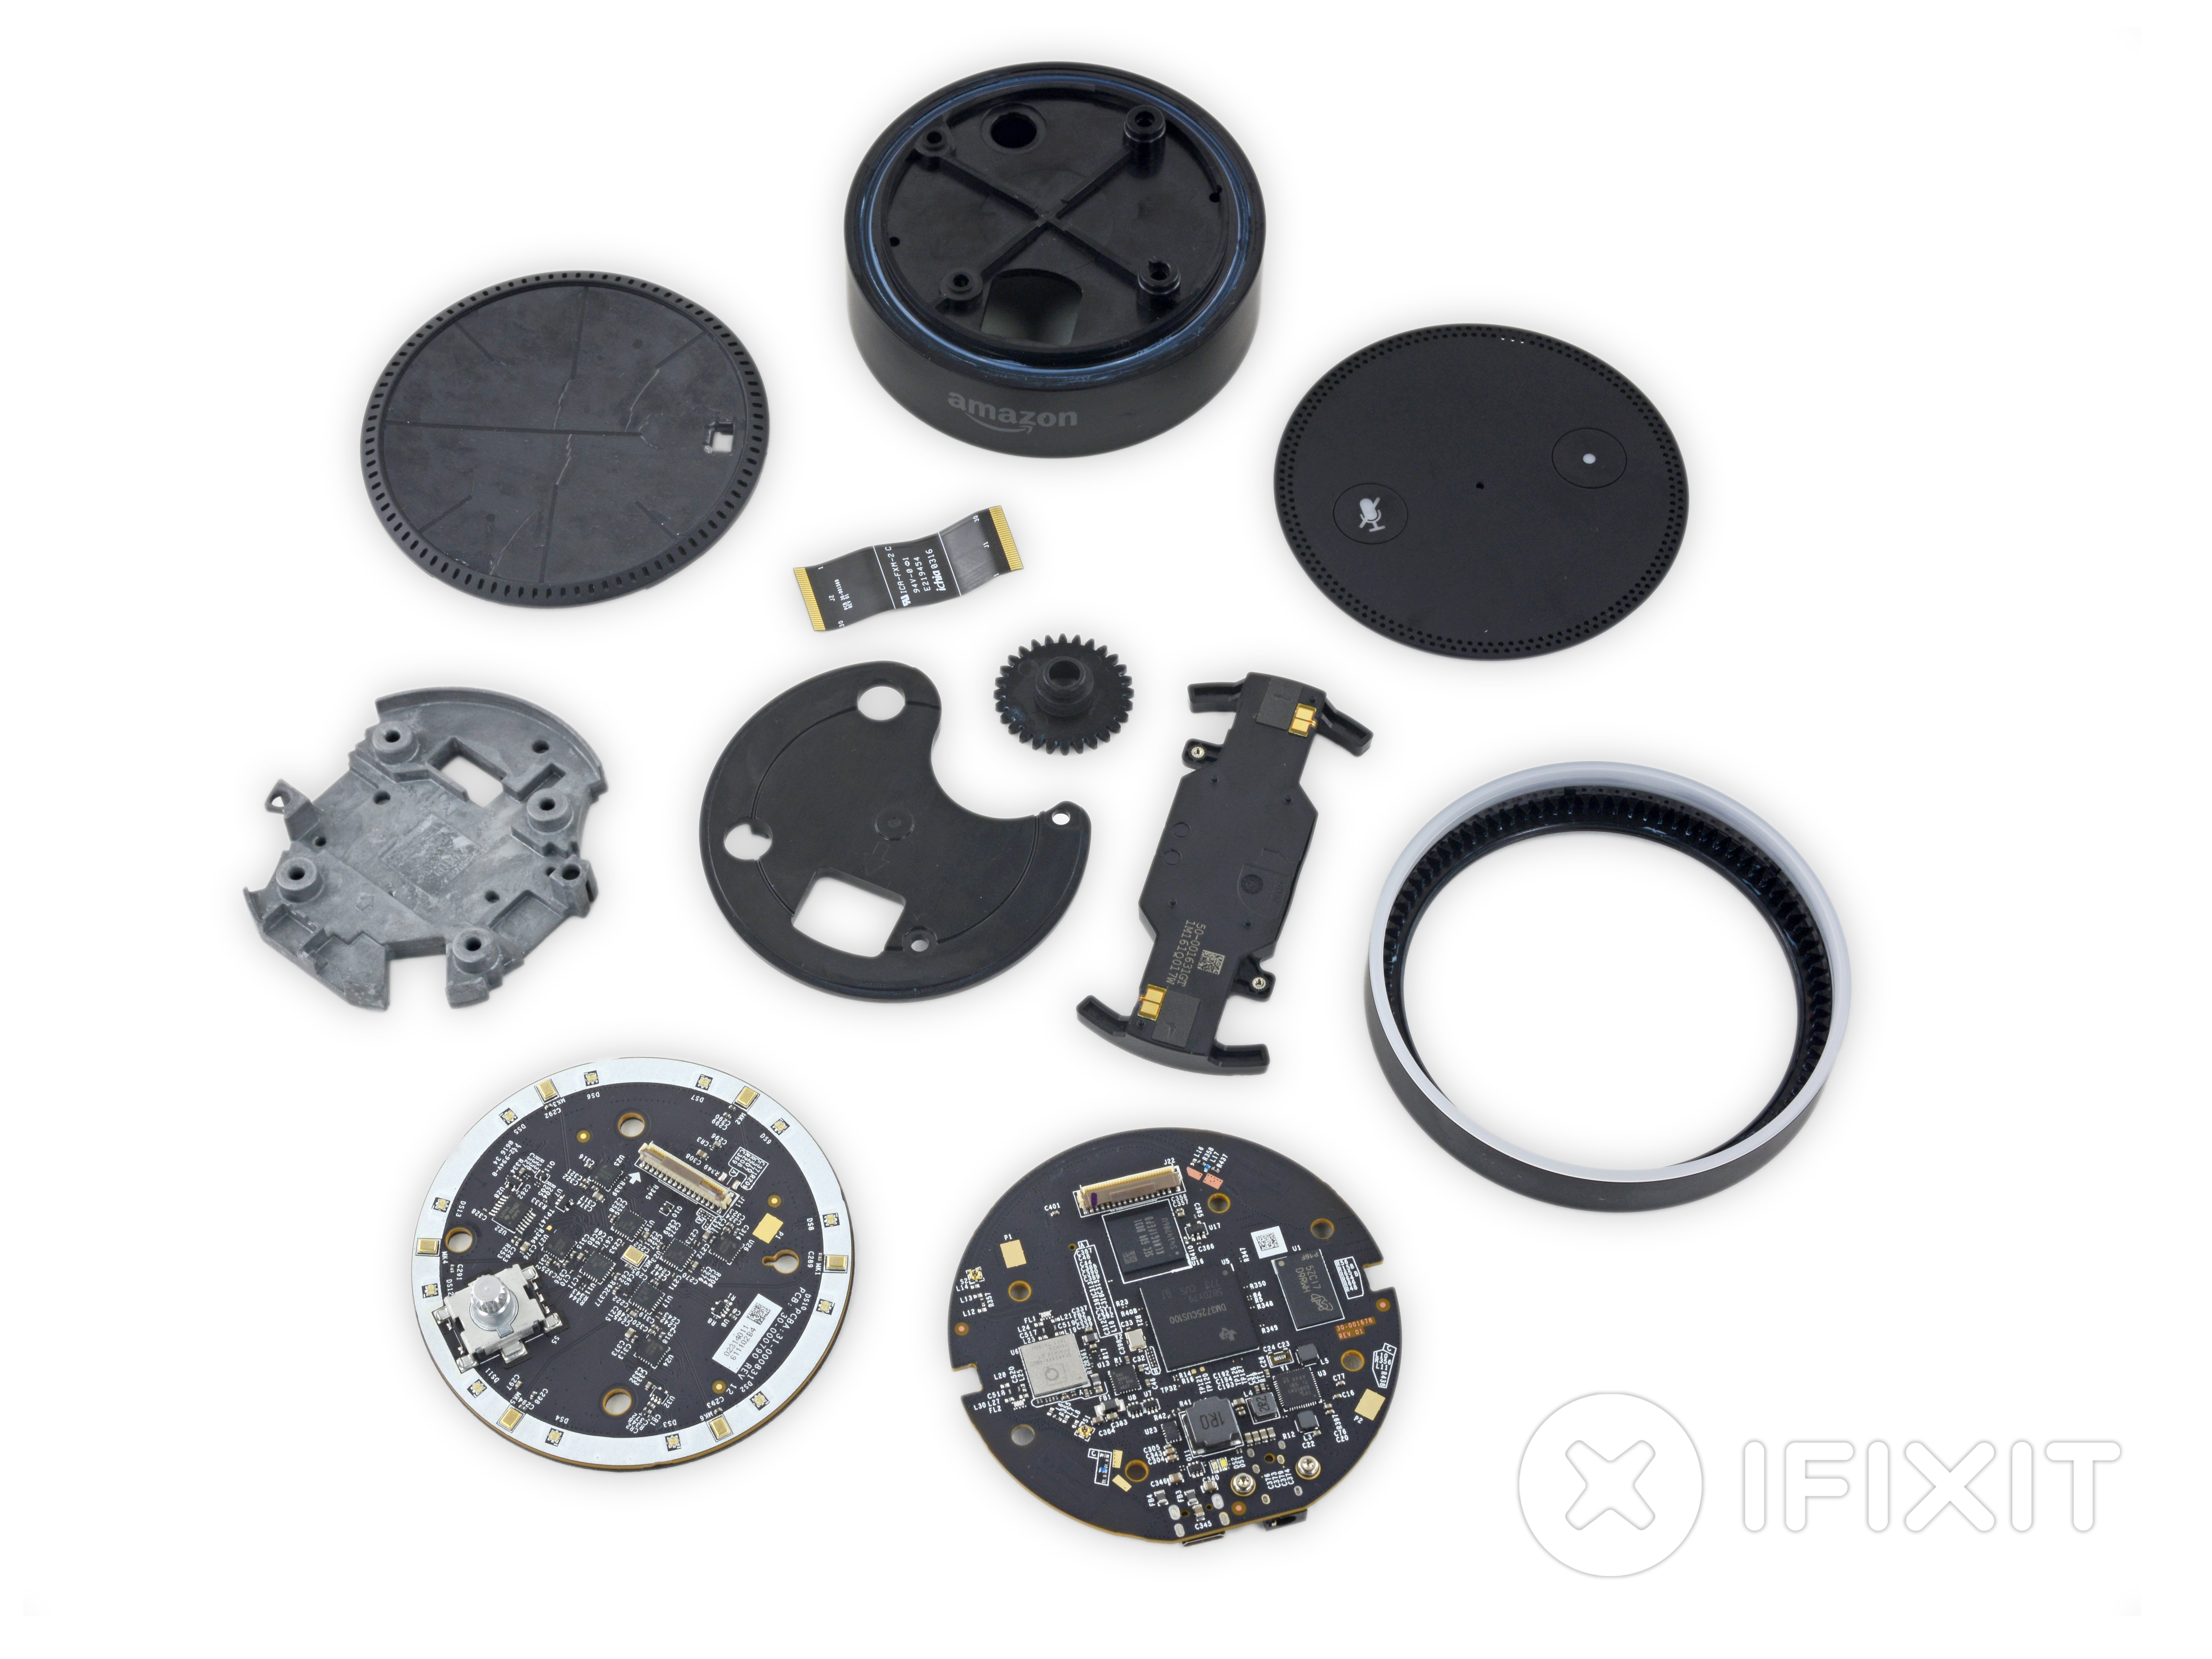 Amazon Echo Dot Teardown - iFixit